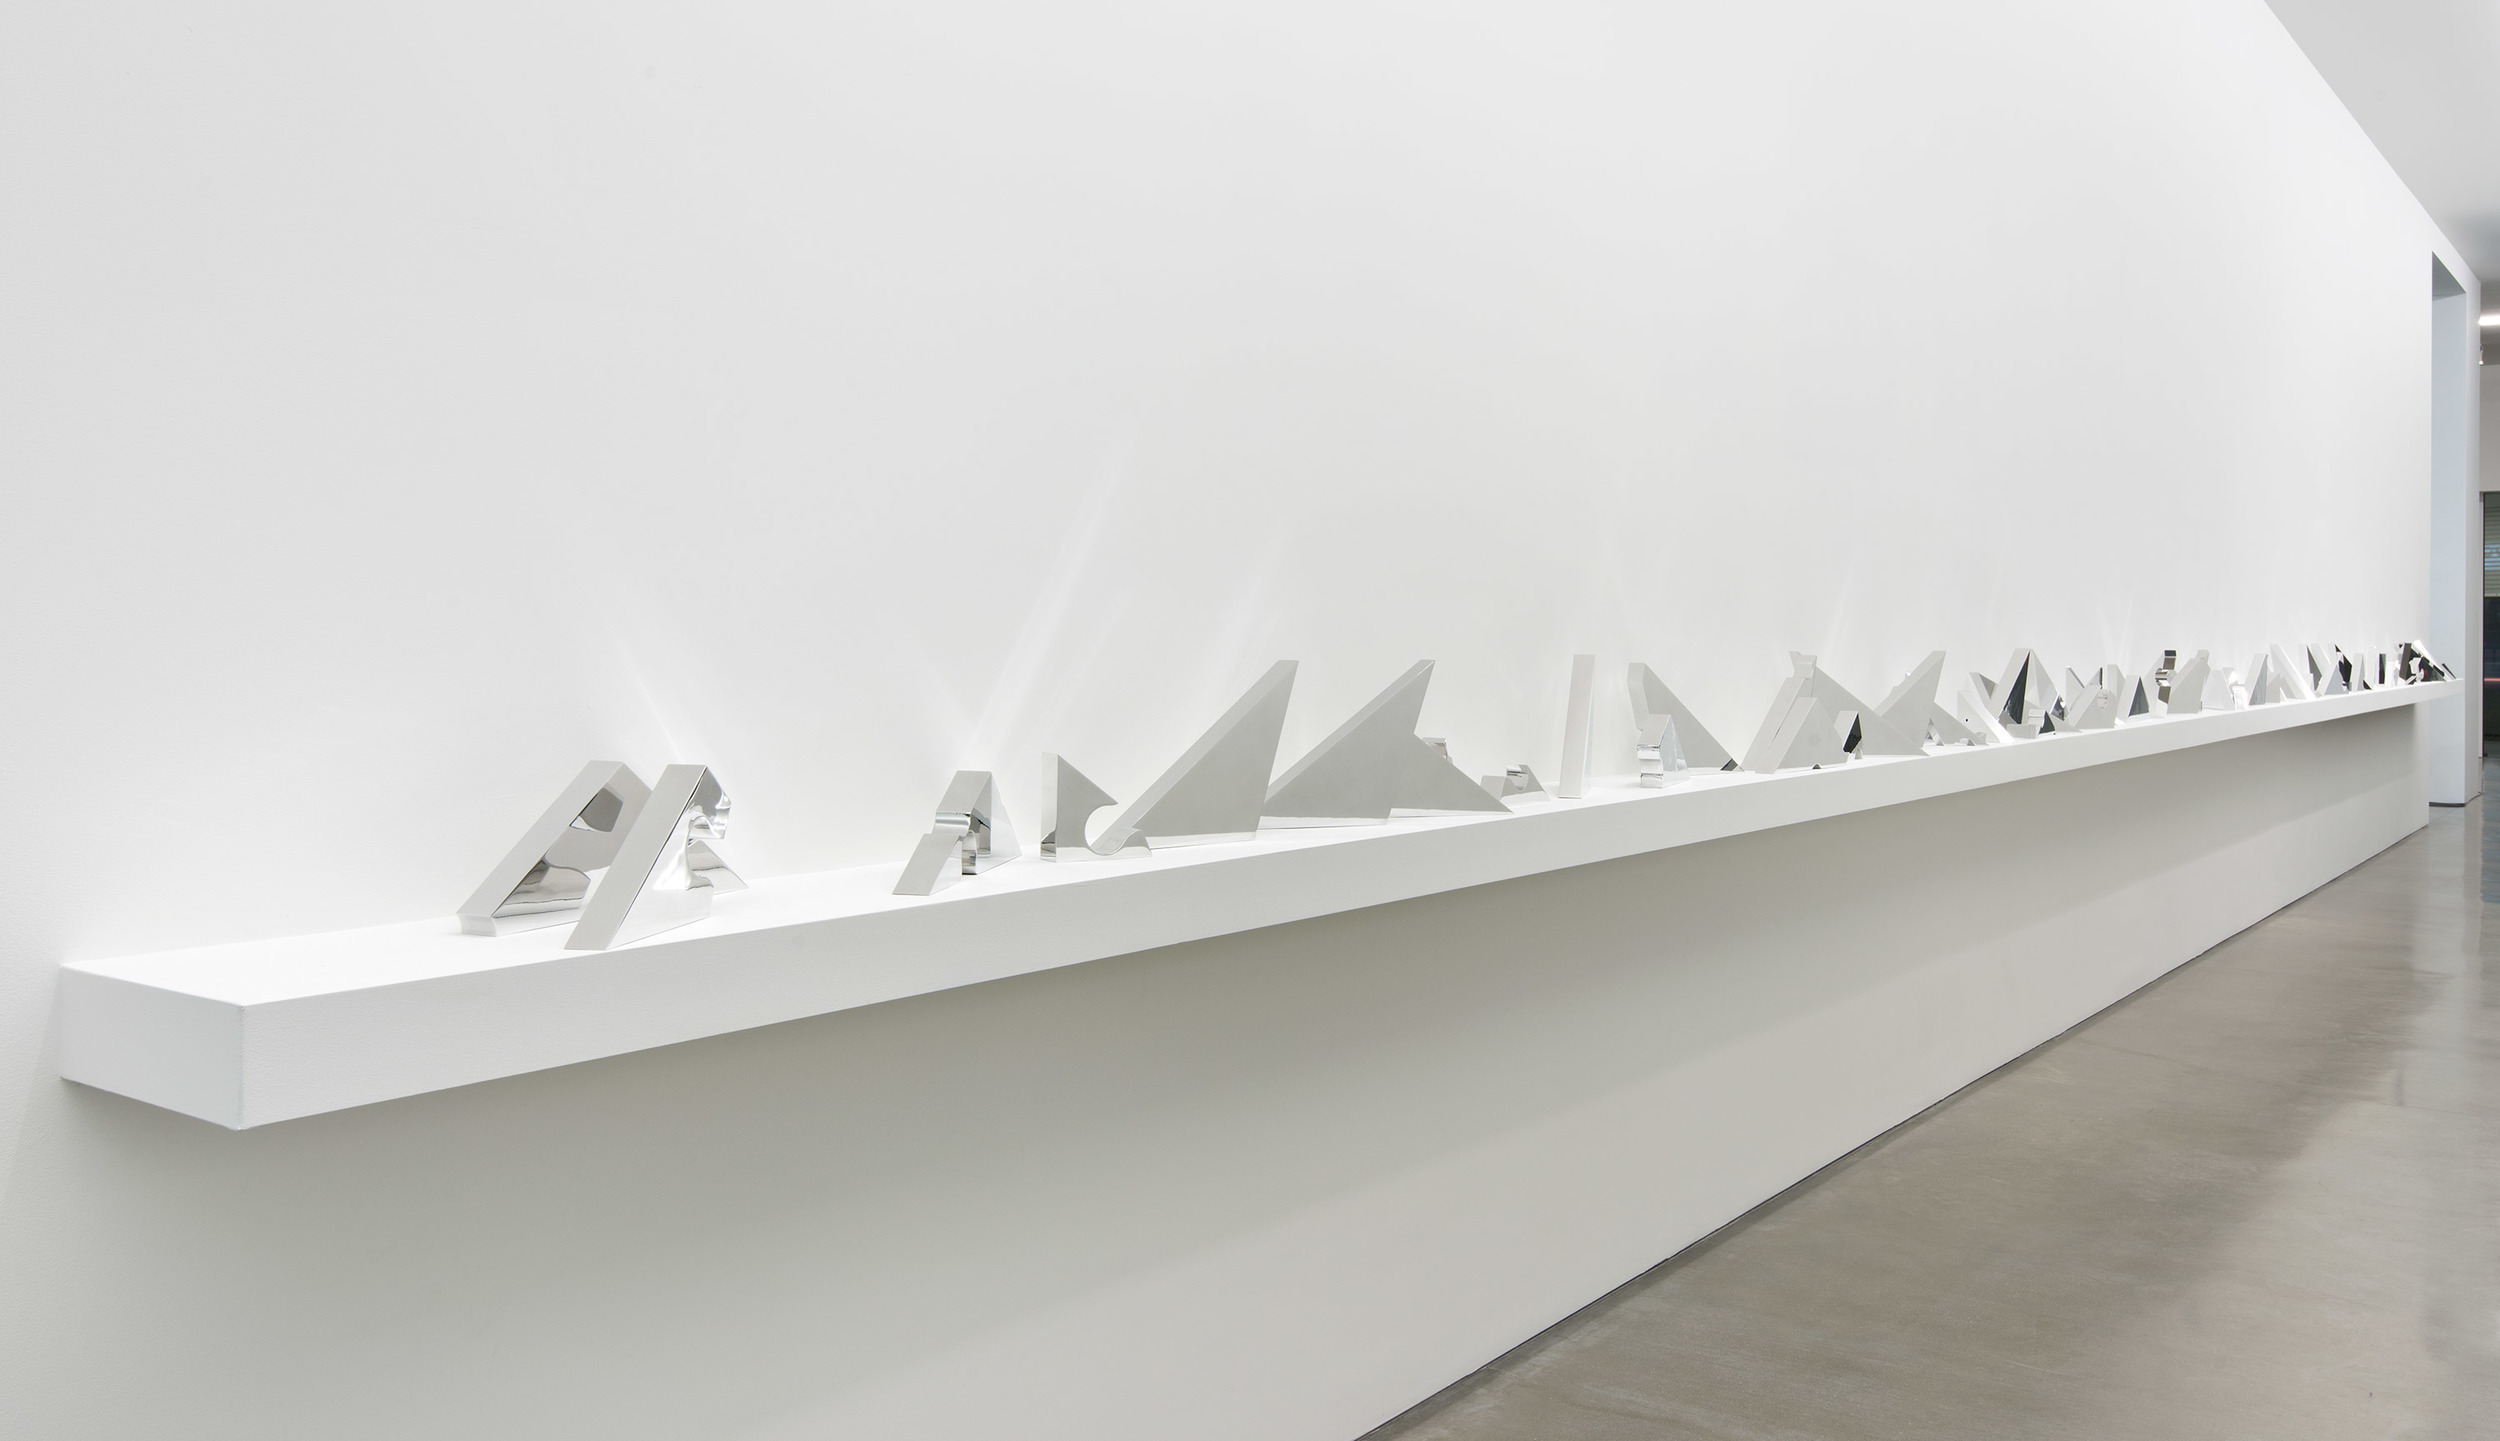 Aluminum Remnants [Copper Surrogate (90˚ Bend, 30˚/60˚, Antidiagonal Bisection: February 21, 2014, Los Angeles, California)]    2014   Polished aluminum  Dimensions variable, 80 parts   Remnants, 2011–